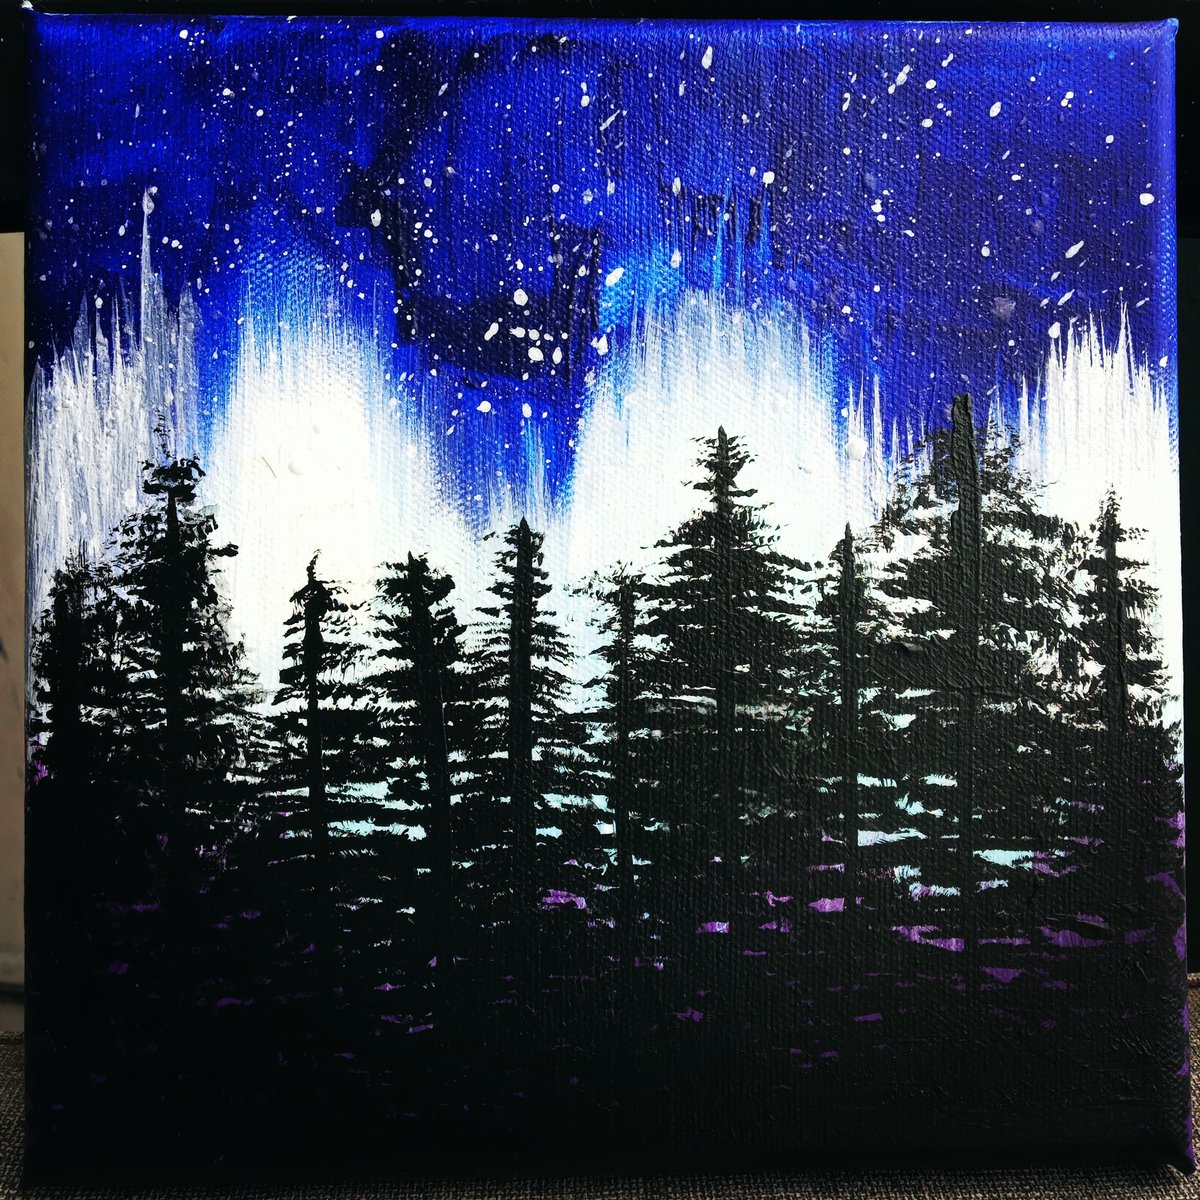 My night sky I finished a couple weeks ago as well. I love the trees, and background. #painting #art #artwork #artist #paintings #myart #aesthetic #nature #beautiful #traditionalart #draw #amazing #skypic.twitter.com/YLlqPvE7wM